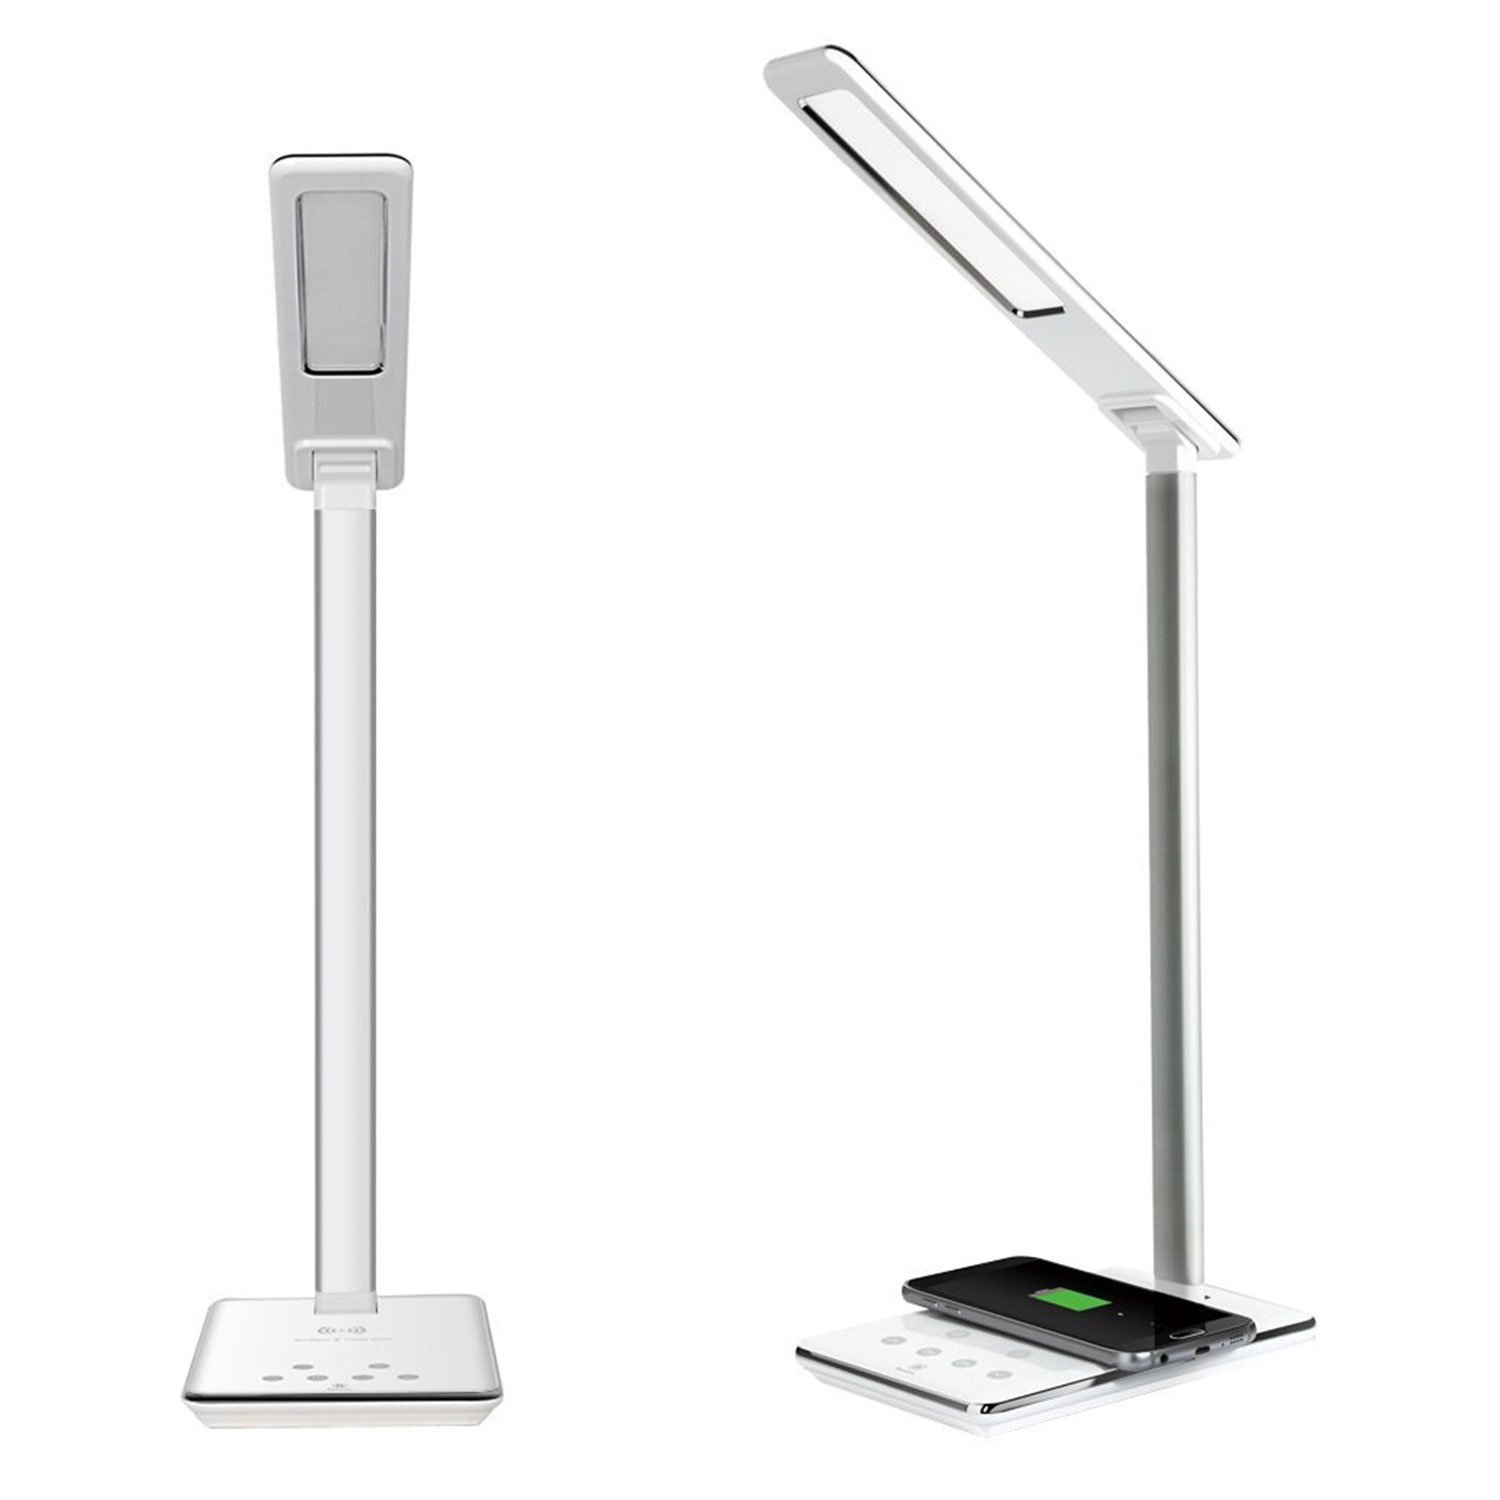 Desk Lamp with Charger - Office Gadgets - tips from the pros